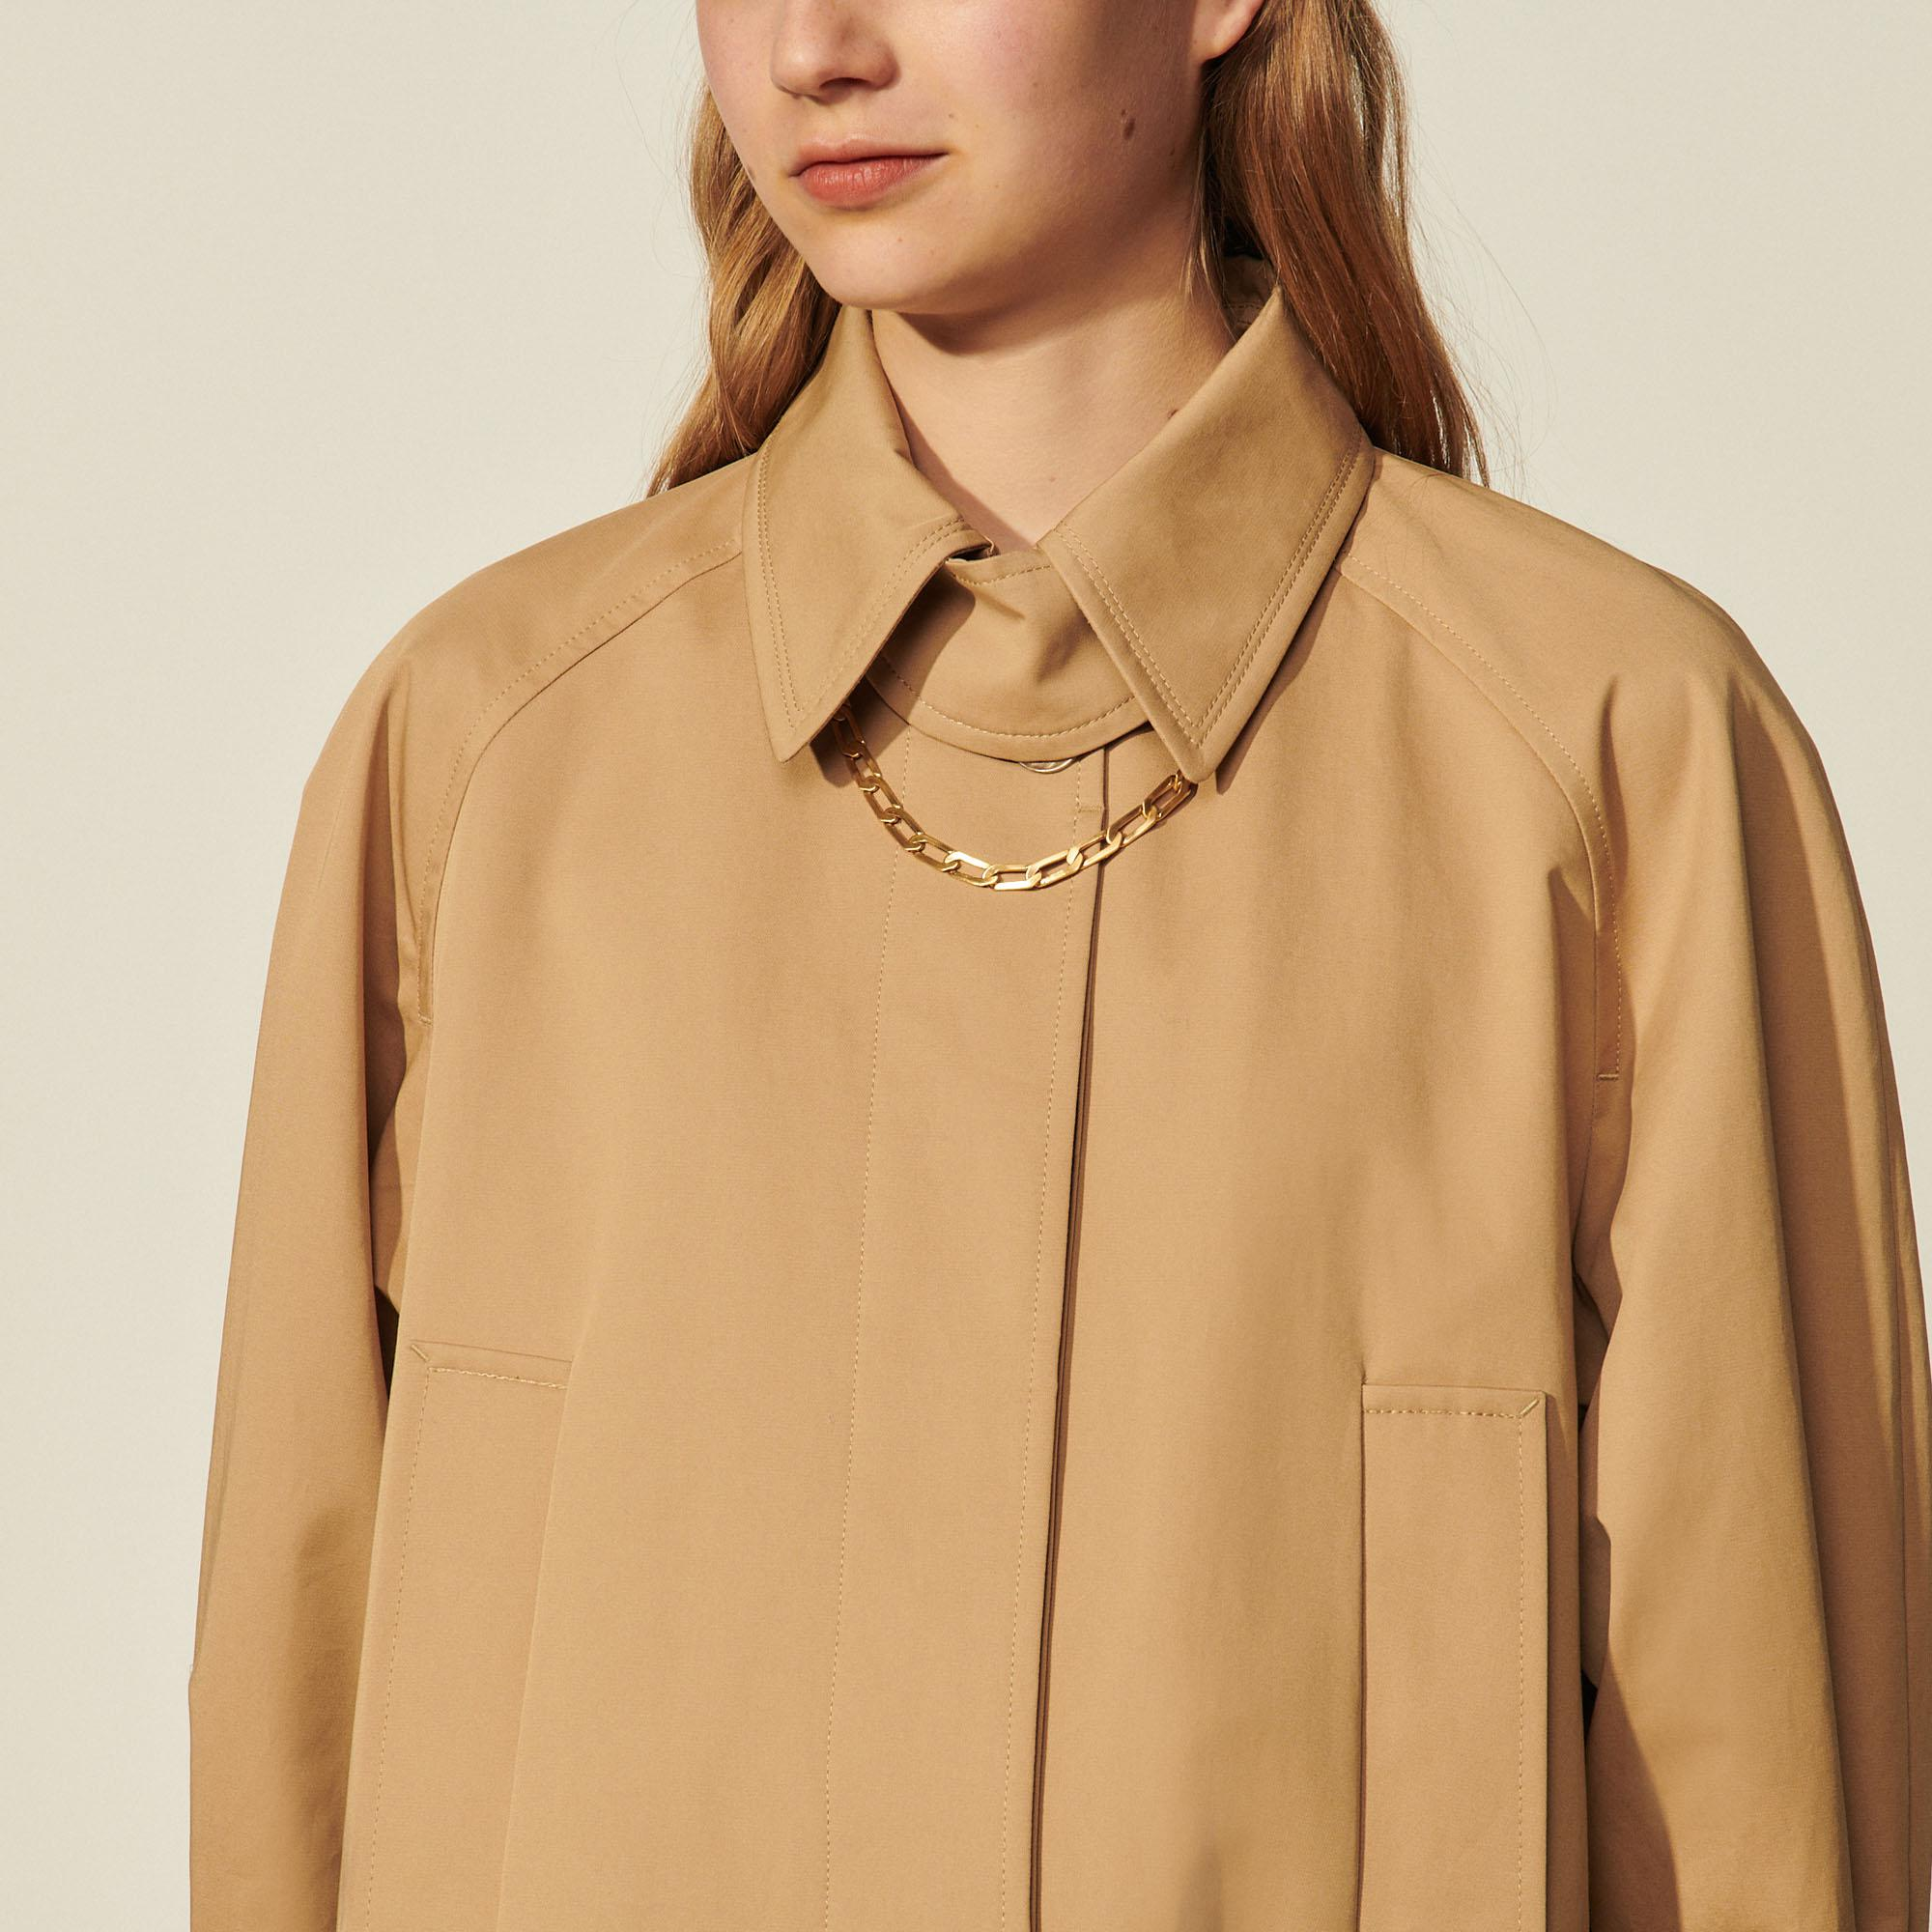 Cotton trench coat with detachable chain 4